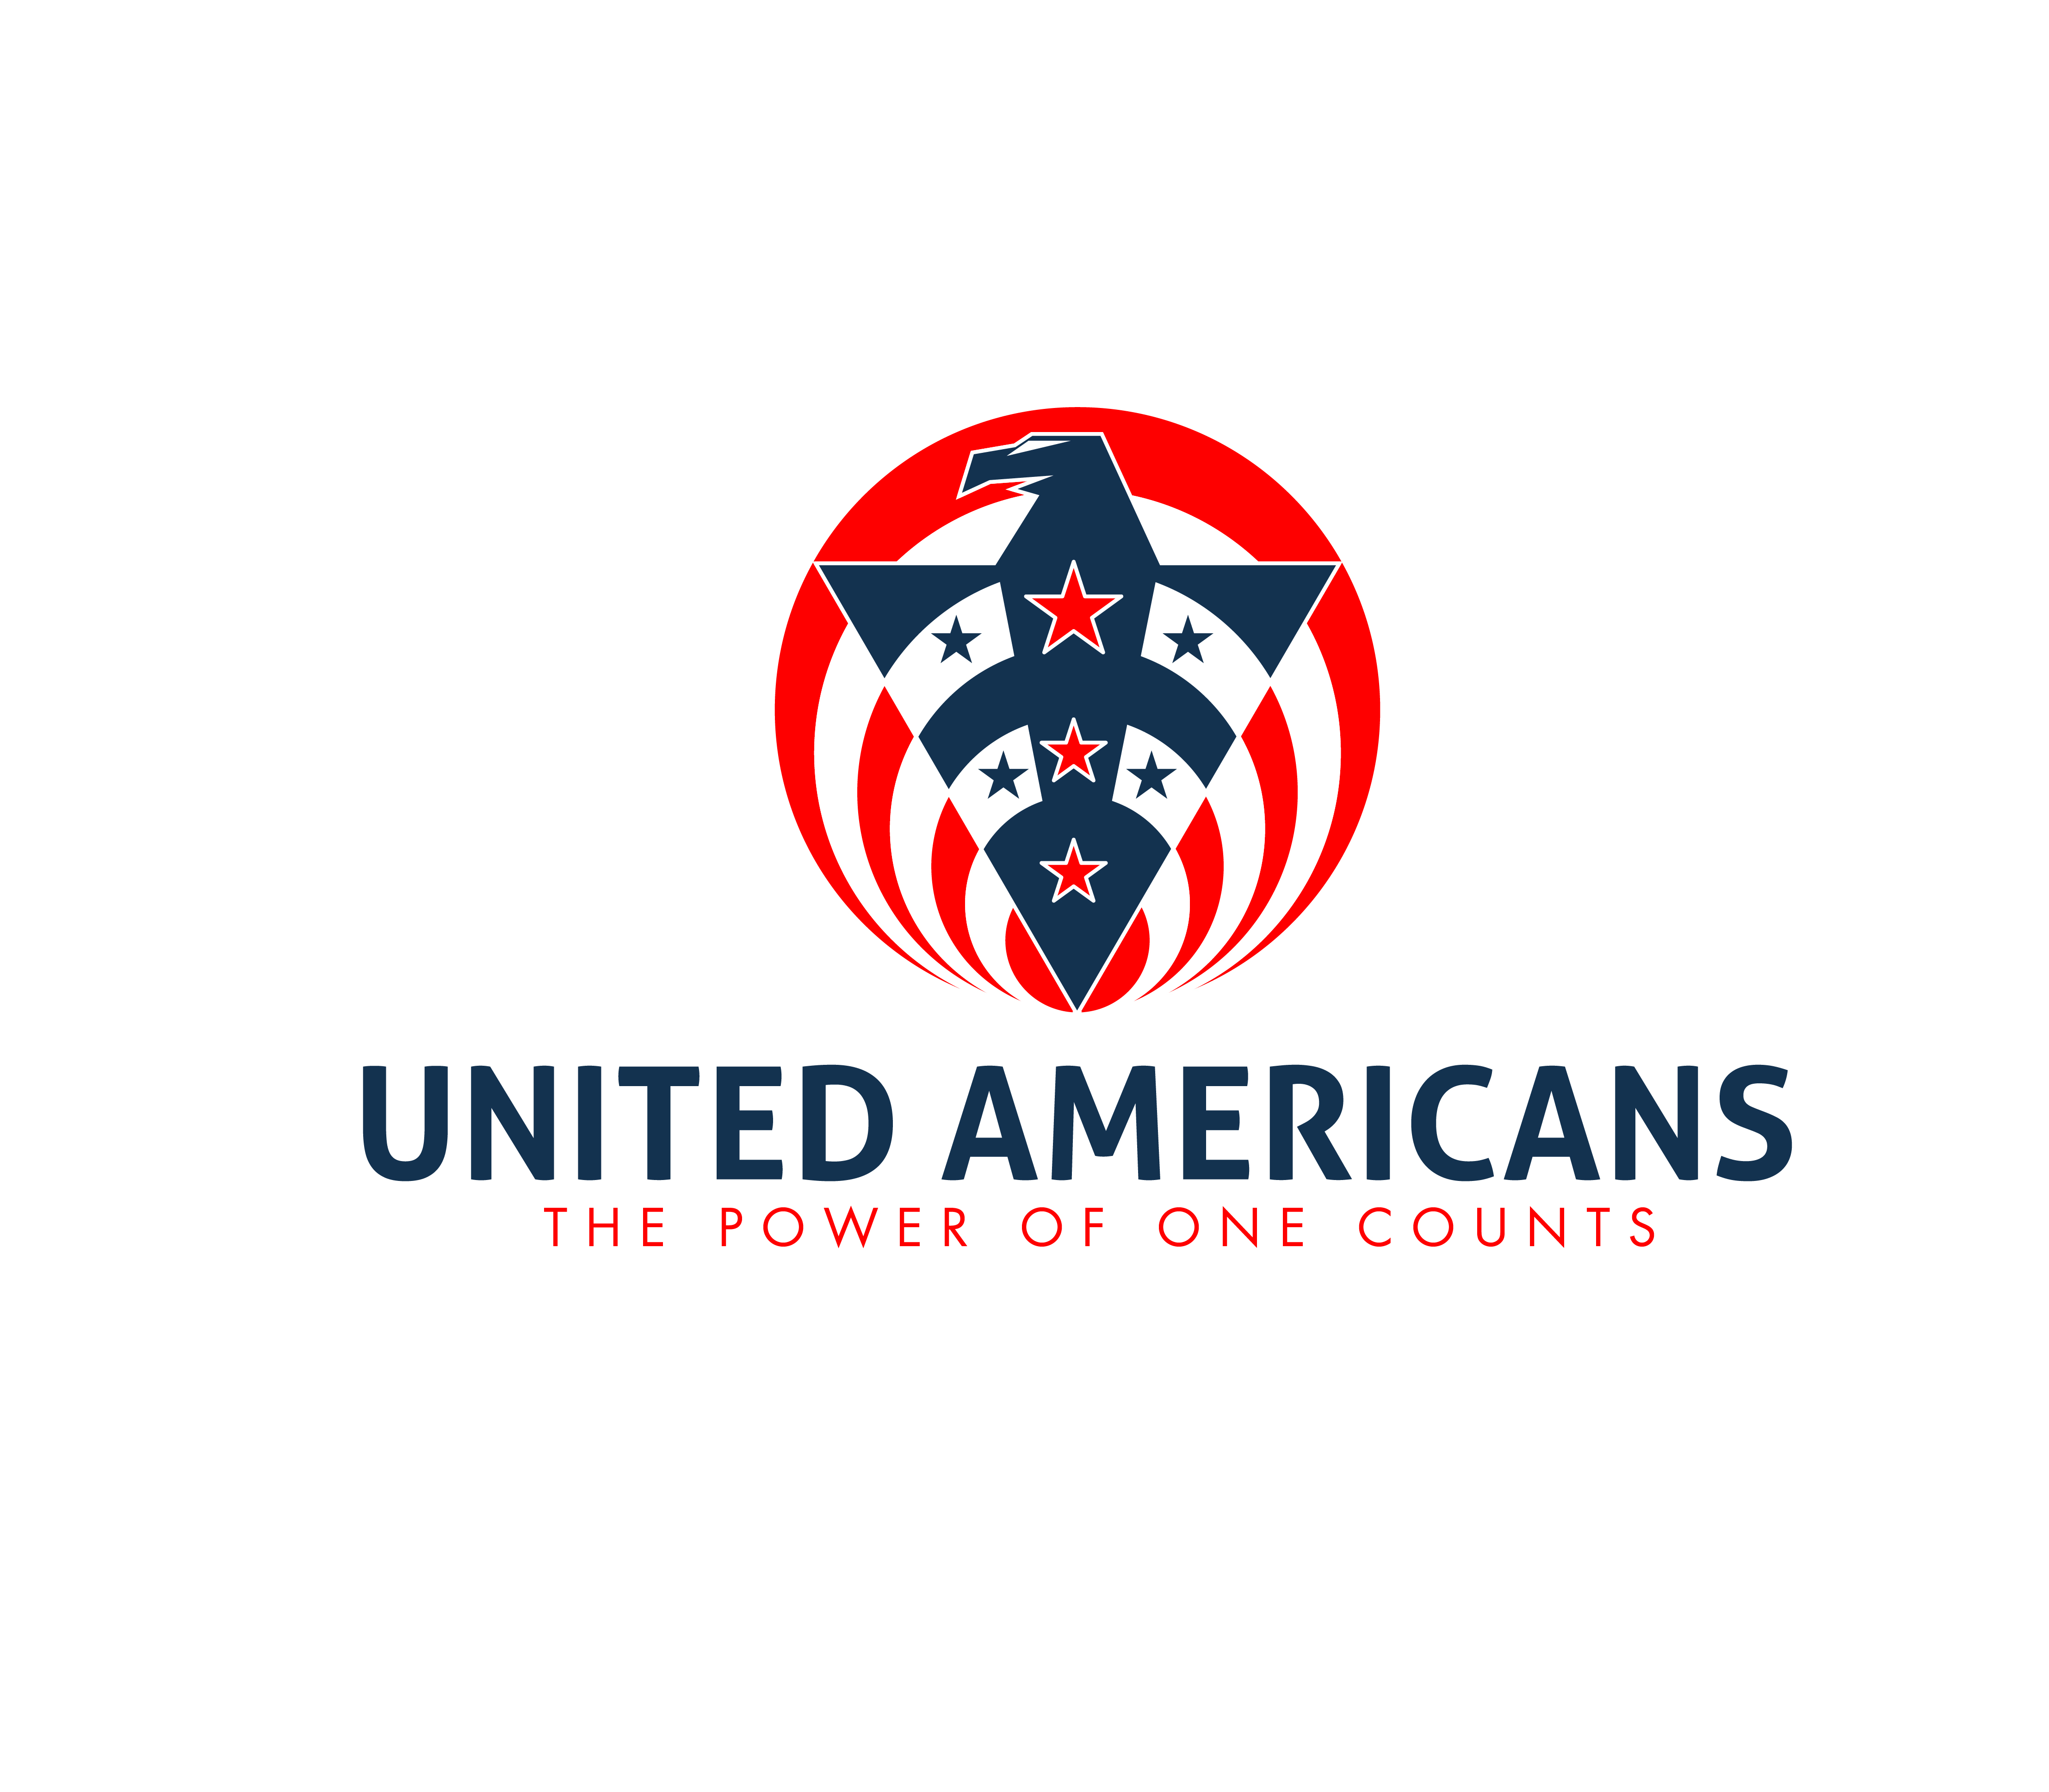 Logo Design by 3draw - Entry No. 164 in the Logo Design Contest Creative Logo Design for United Americans.